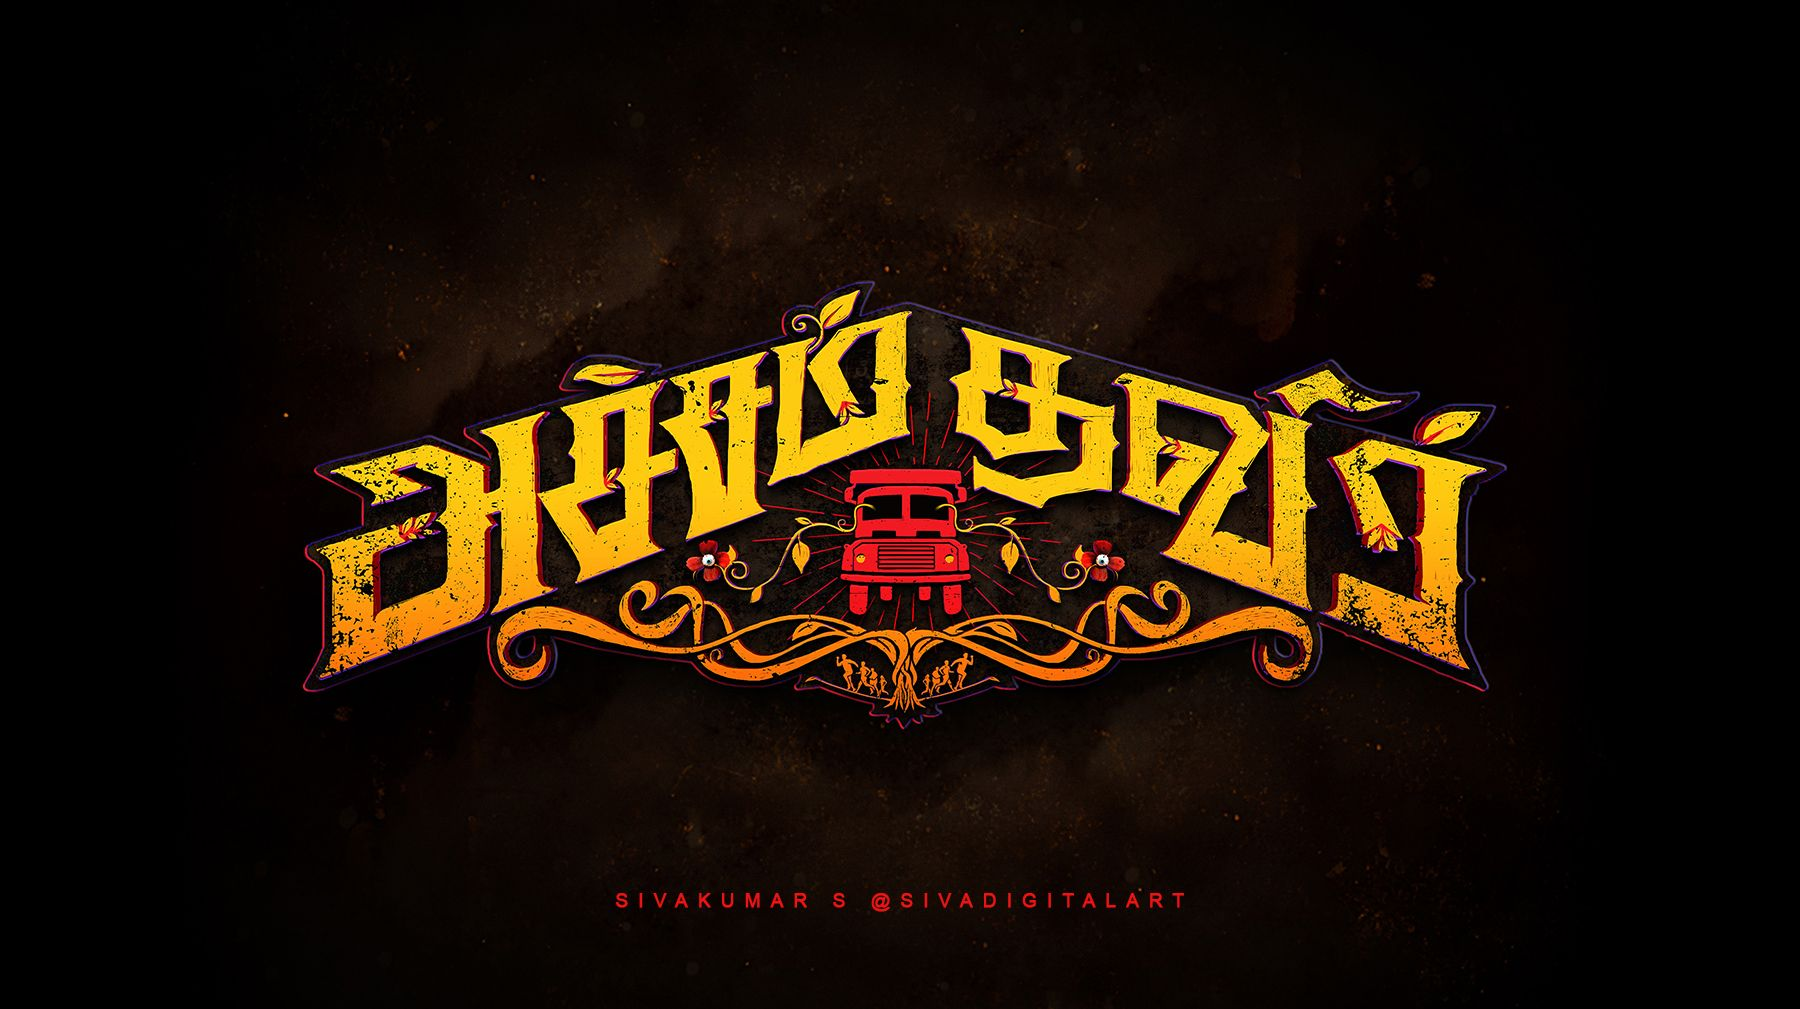 Title design for an upcoming tamil film Atcham Thavir  A Singapore